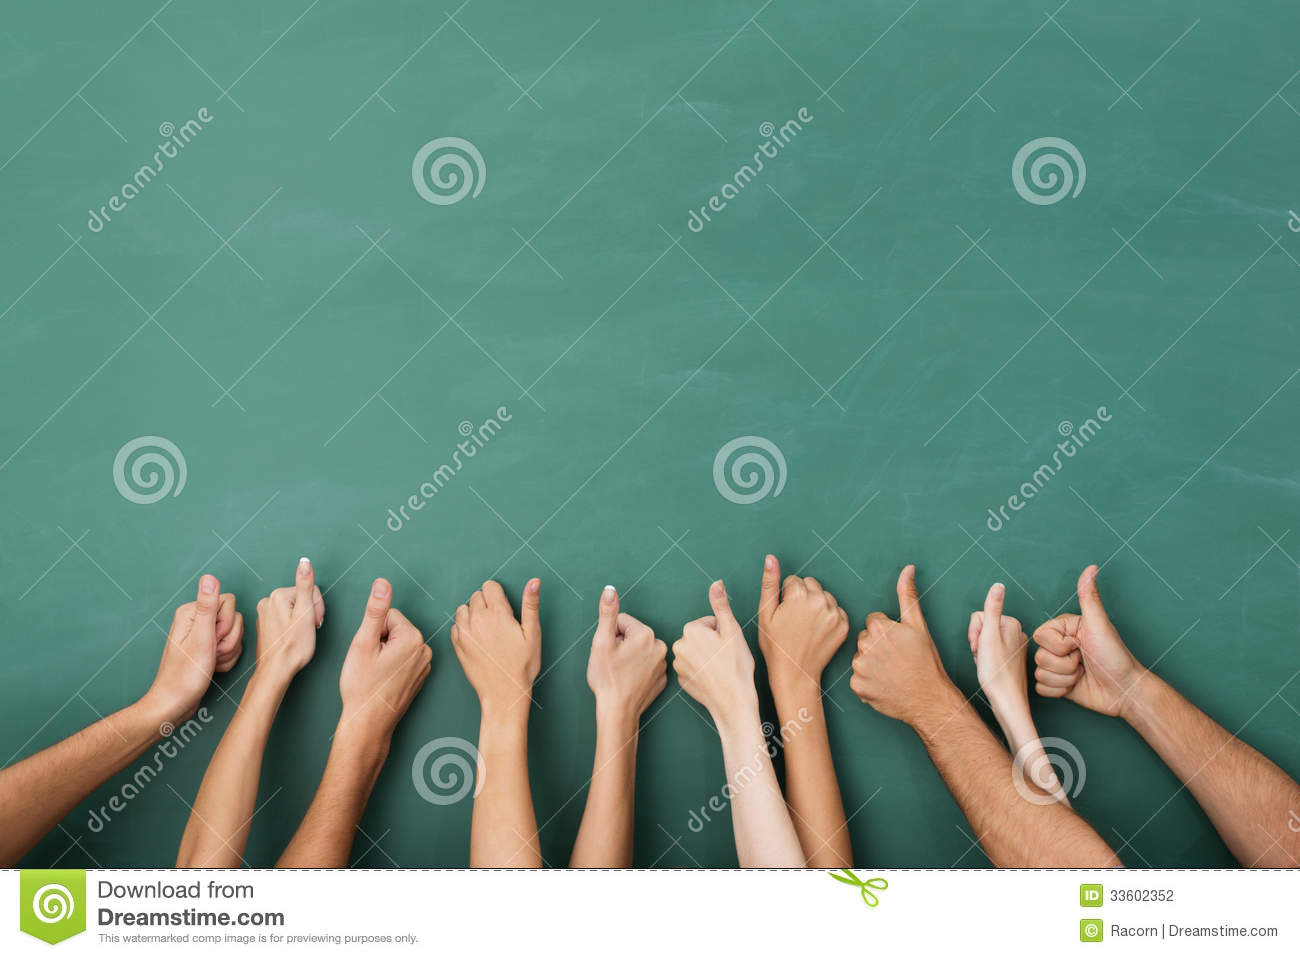 Group of people giving a thumbs up gesture